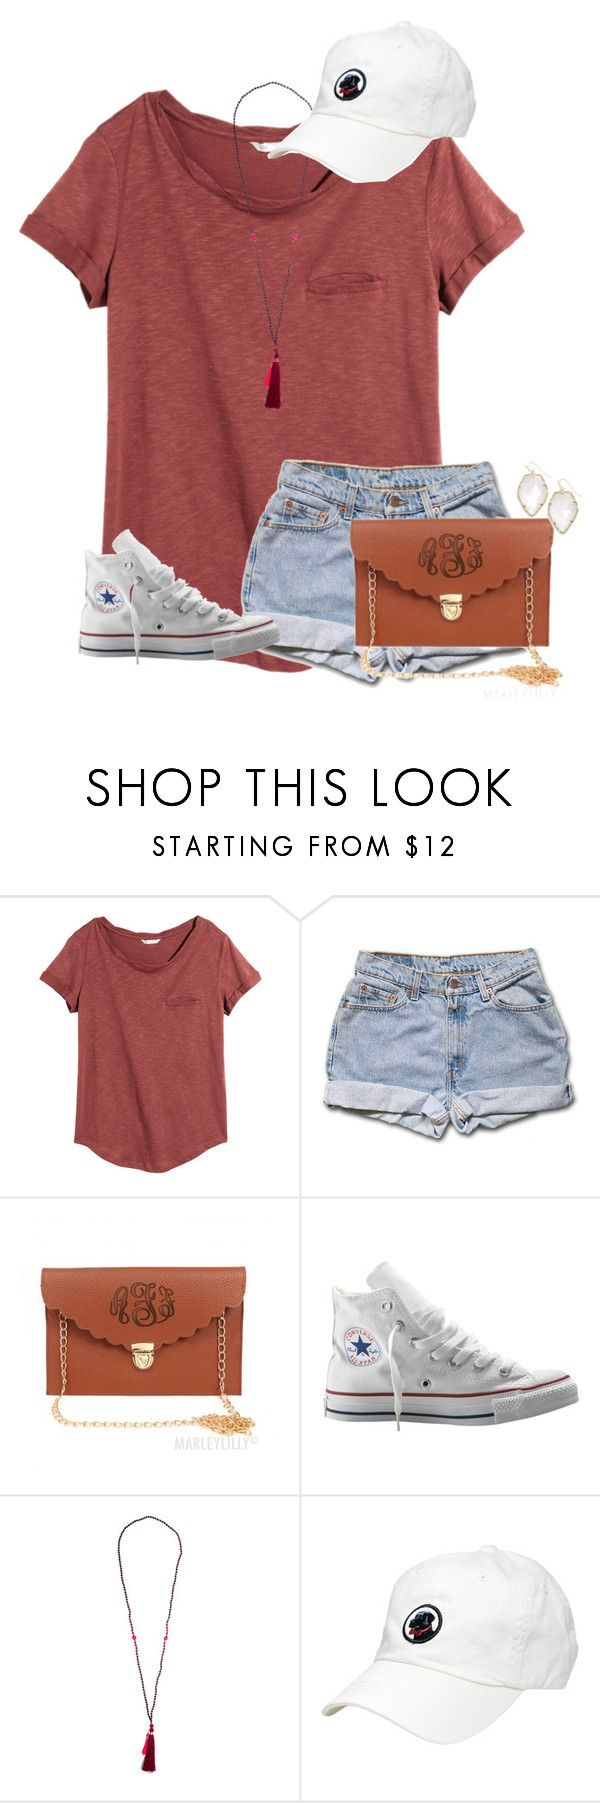 """""""ARRGH *d*"""" by katew4019 ❤ liked on Polyvore featuring мода, H&M, Converse и Kendra Scott"""